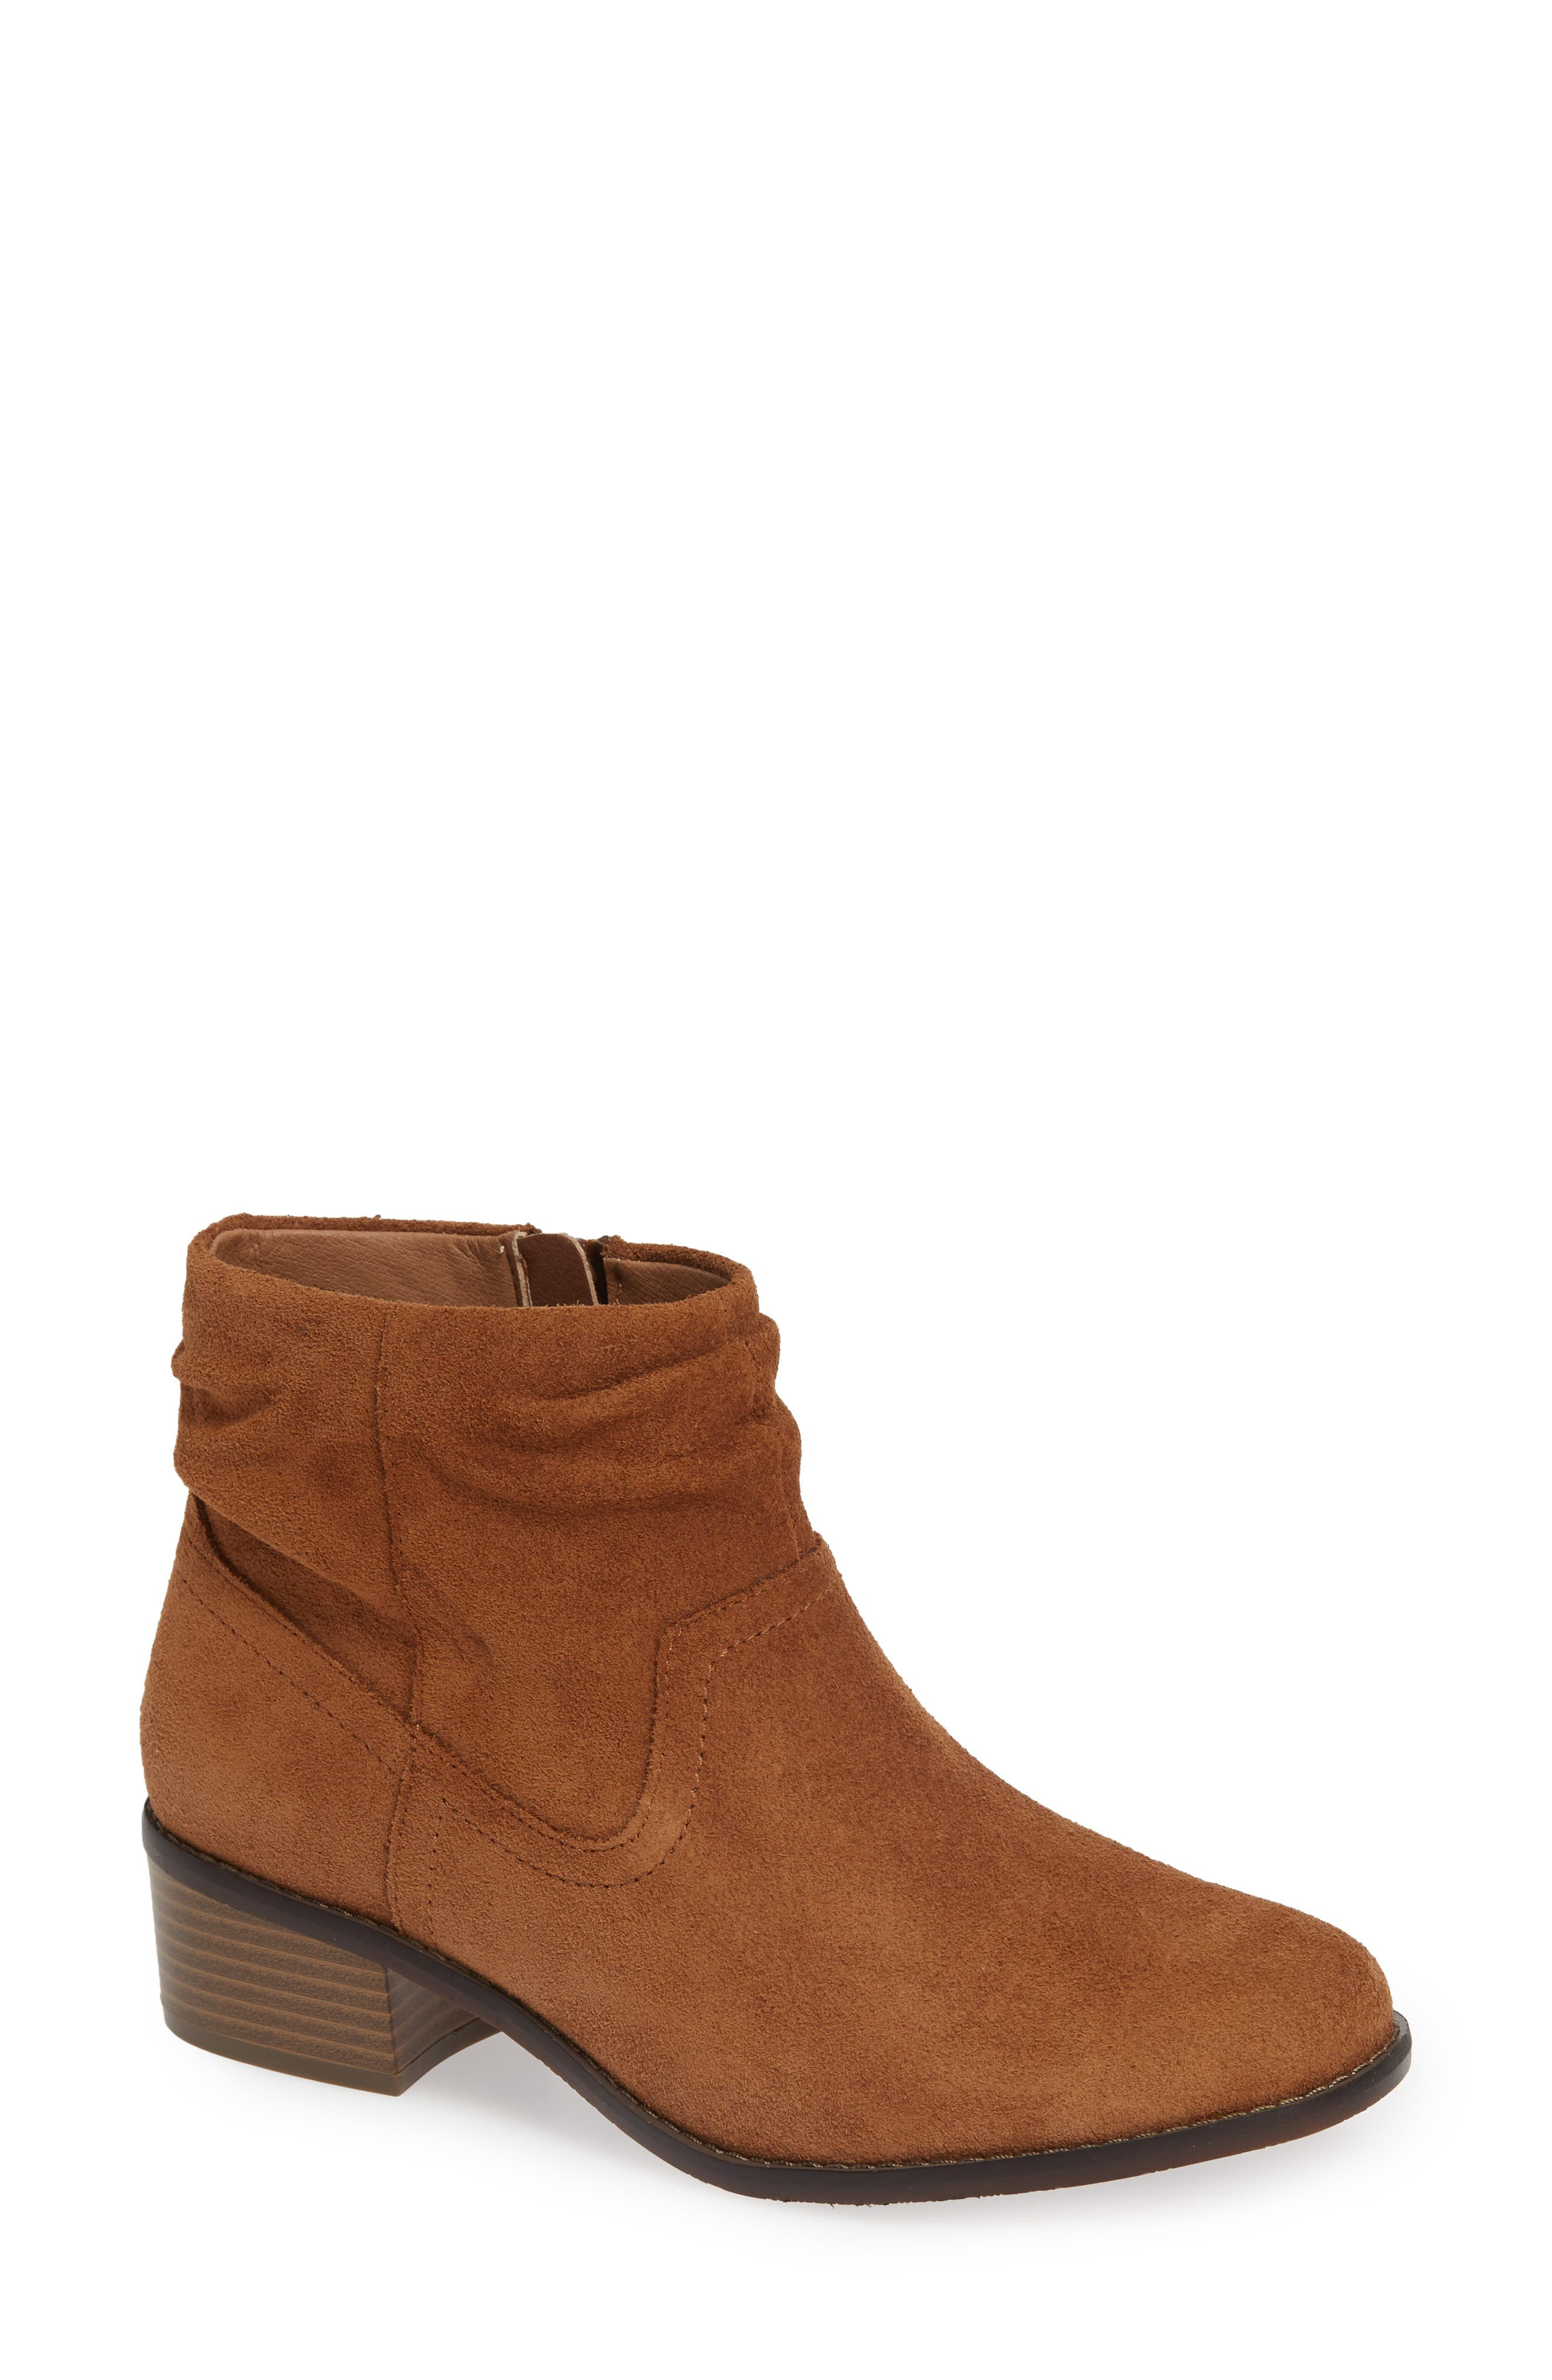 Kanela Low Slouchy Bootie,                         Main,                         color, TOFFEE SUEDE